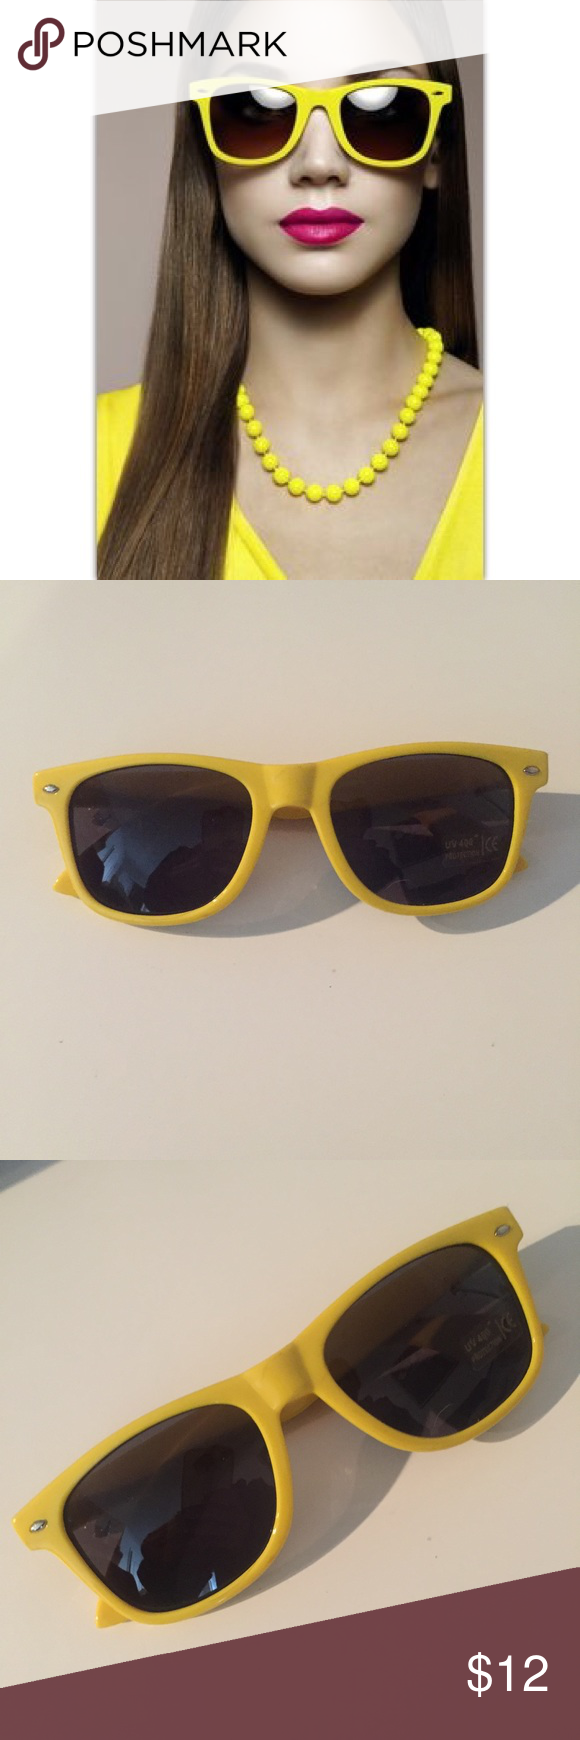 🔅Vintage Yellow Sunglasses Vintage style yellow shades. Yellow frames, black lens. NWOT. Summer, party girl sunglasses Vintage Accessories Sunglasses